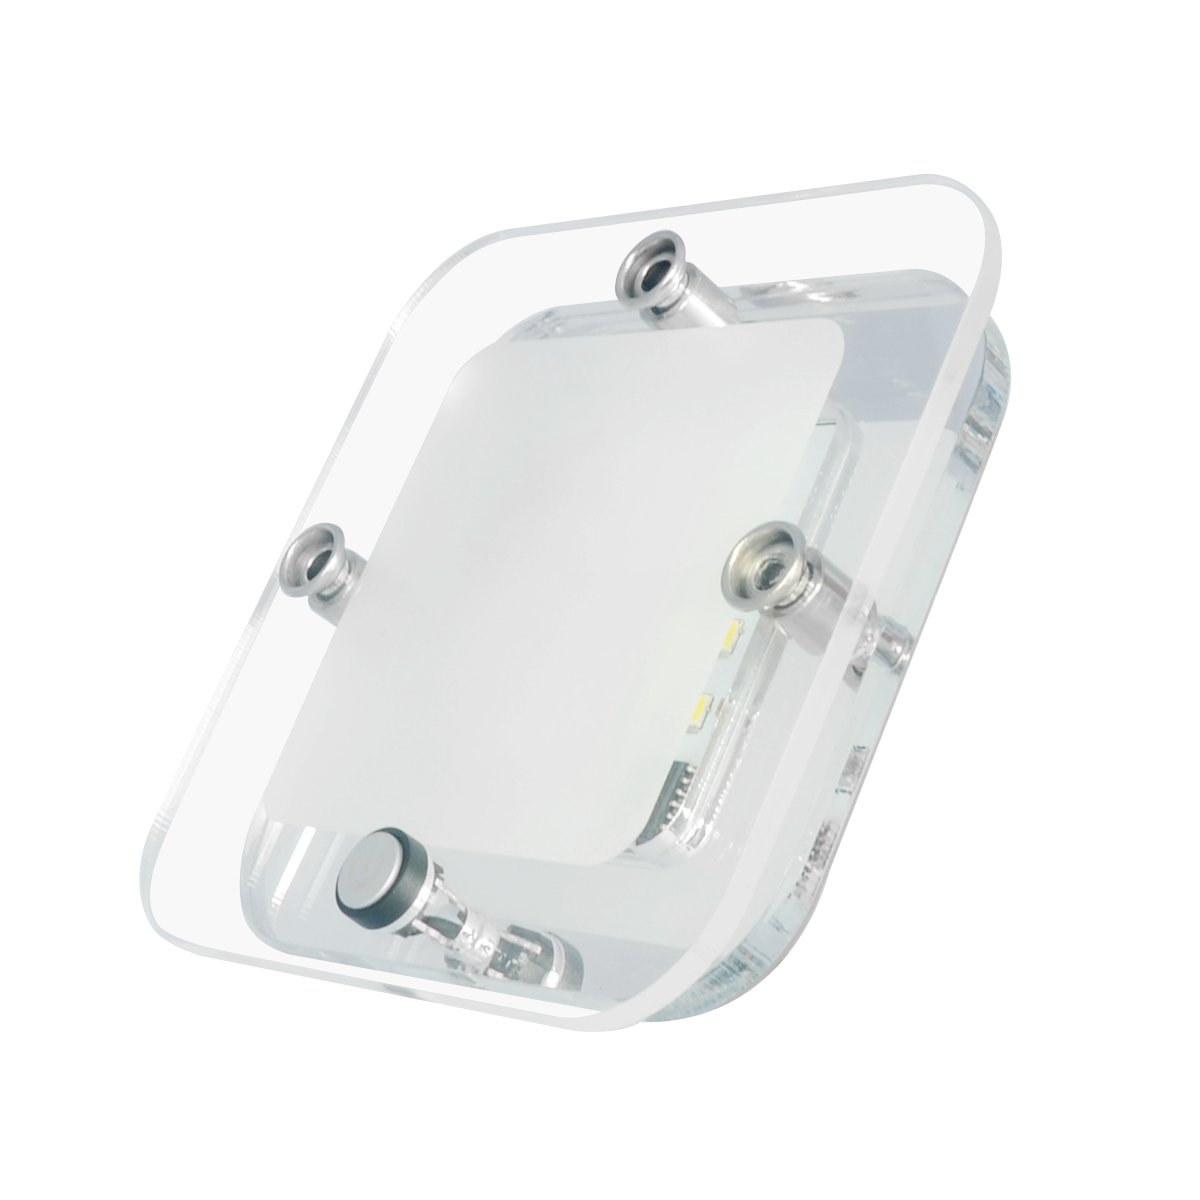 Dream Lighting Motorhome Ceiling Lights 12volt Luxury Acrylic Panel On//Off Button Switch Warm White